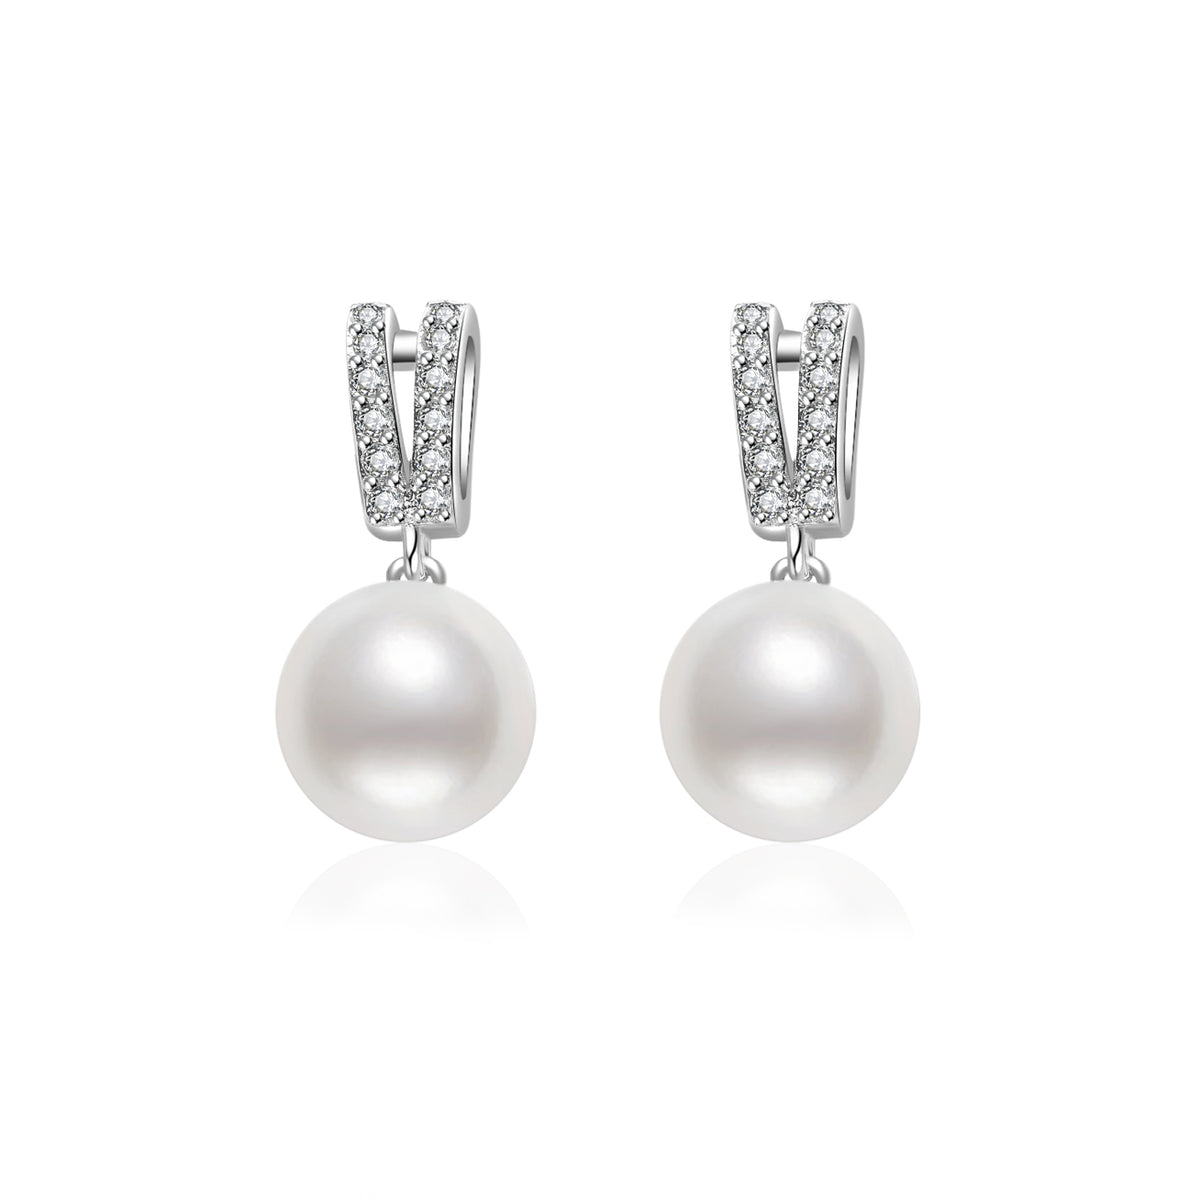 Pearly Lustre Elegant Freshwater Pearl Earrings WE00061 Product Image with Model